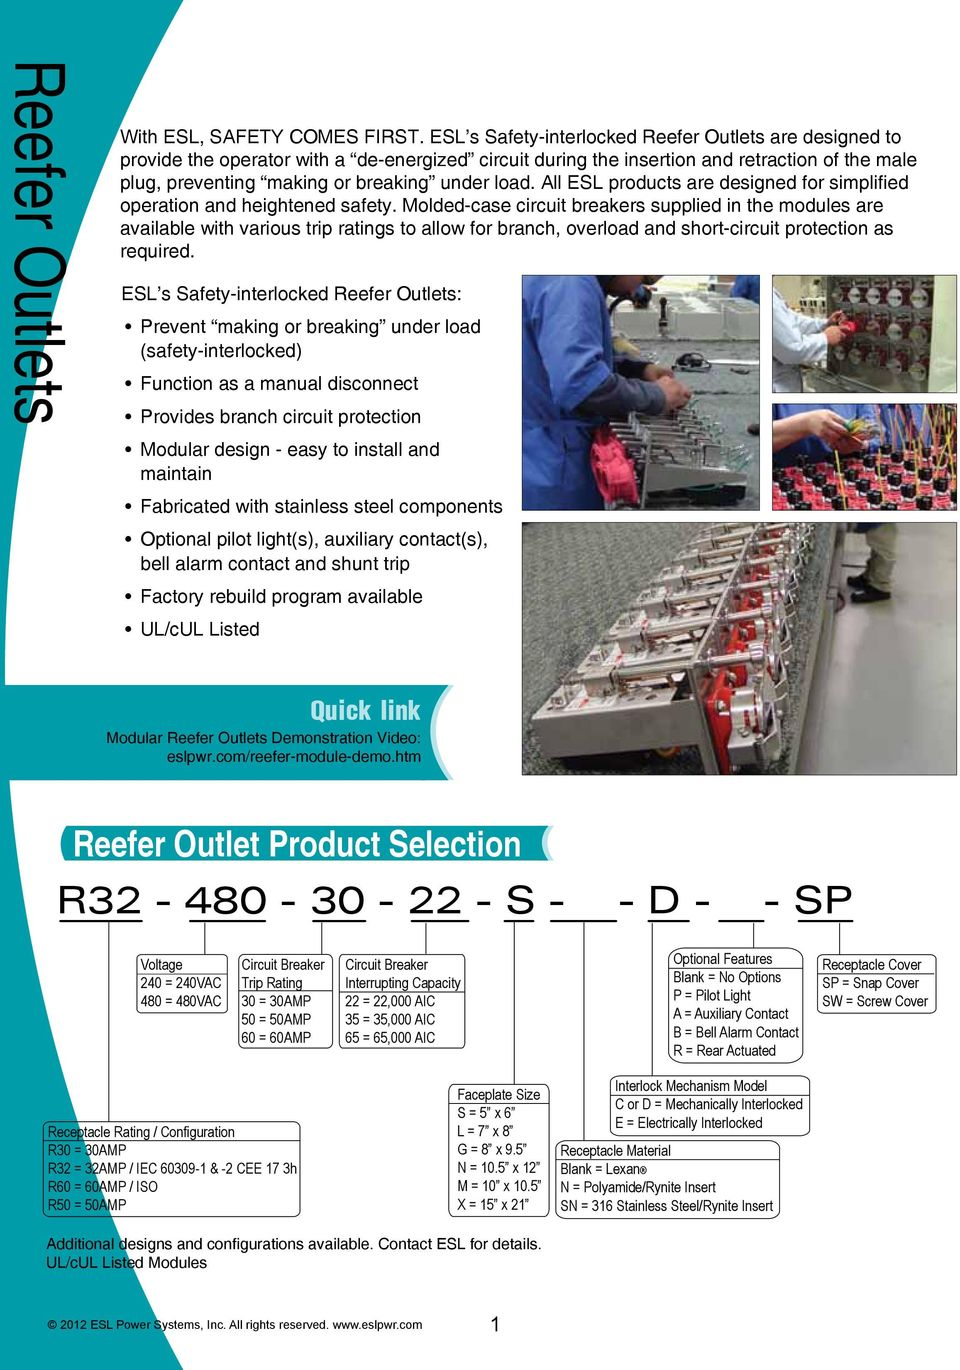 Intermodal Port Terminal Shipboard Railroad Industrial Shore Outlet Wiring Diagram Further 2 Gang Box Additionally All Esl Products Are Designed For Simplified Operation And Heightened Safety 5 Interlocked Reefer Outlets